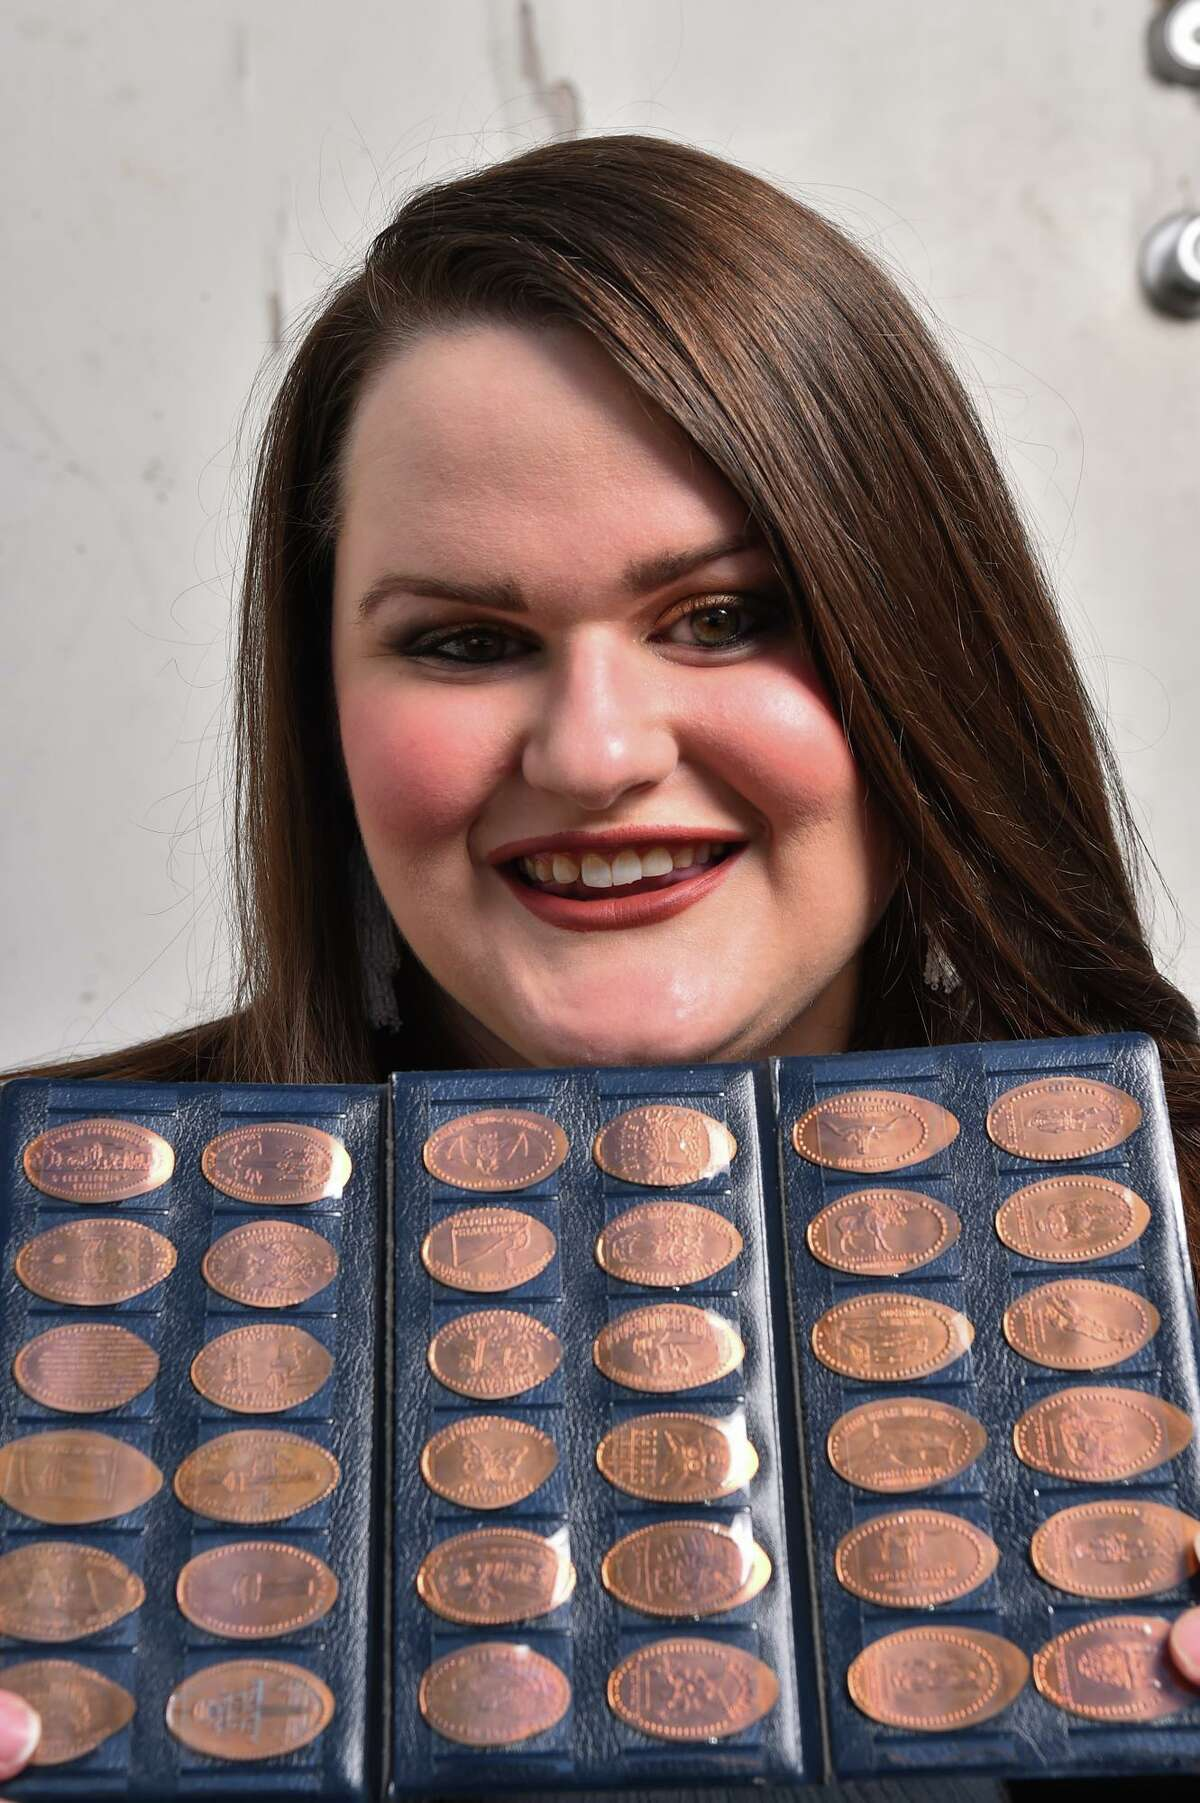 Brandy Gaskins has more than 1,300 stretched pennies from six countries.